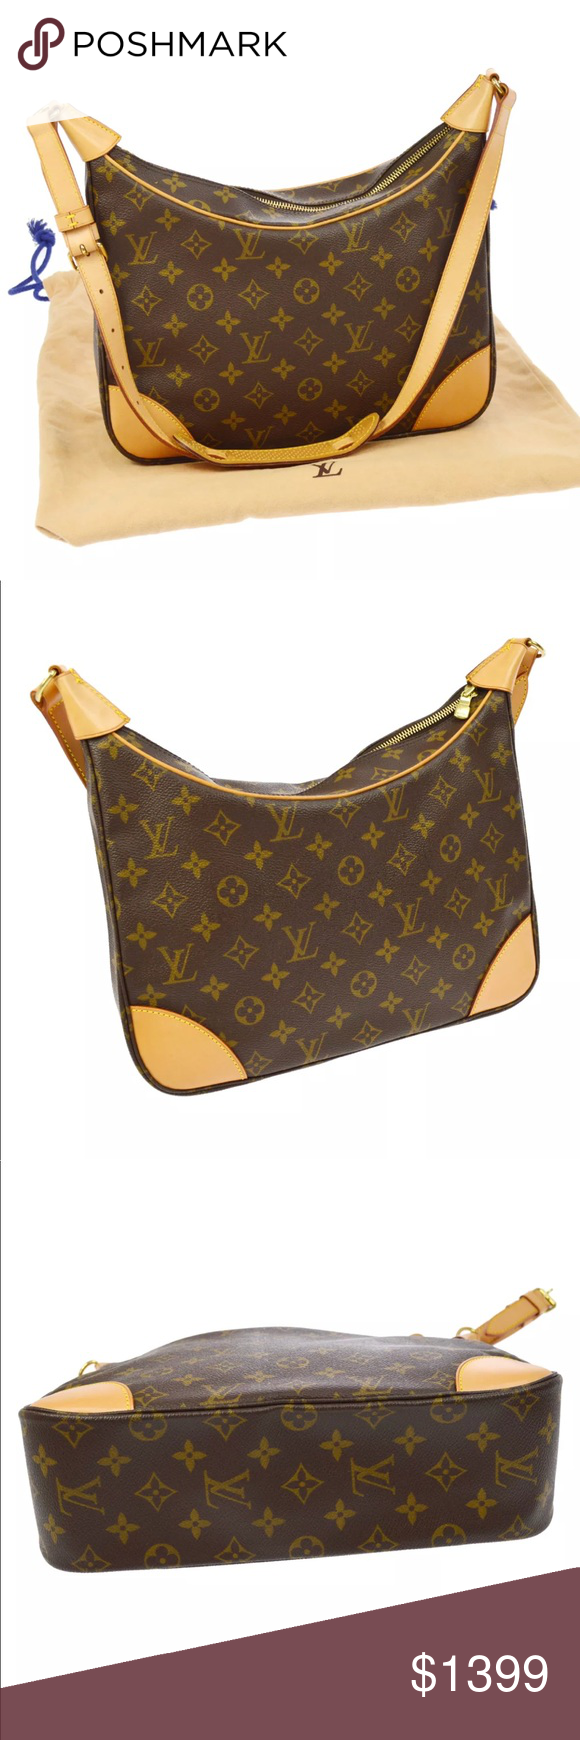 NEW Authentic Louis Vuitton Boulogne 30 Tote This is the discontinued  Boulogne GM! It is made out of the traditional monogram toile canvas and  has a ... 3e37487f8a1fd